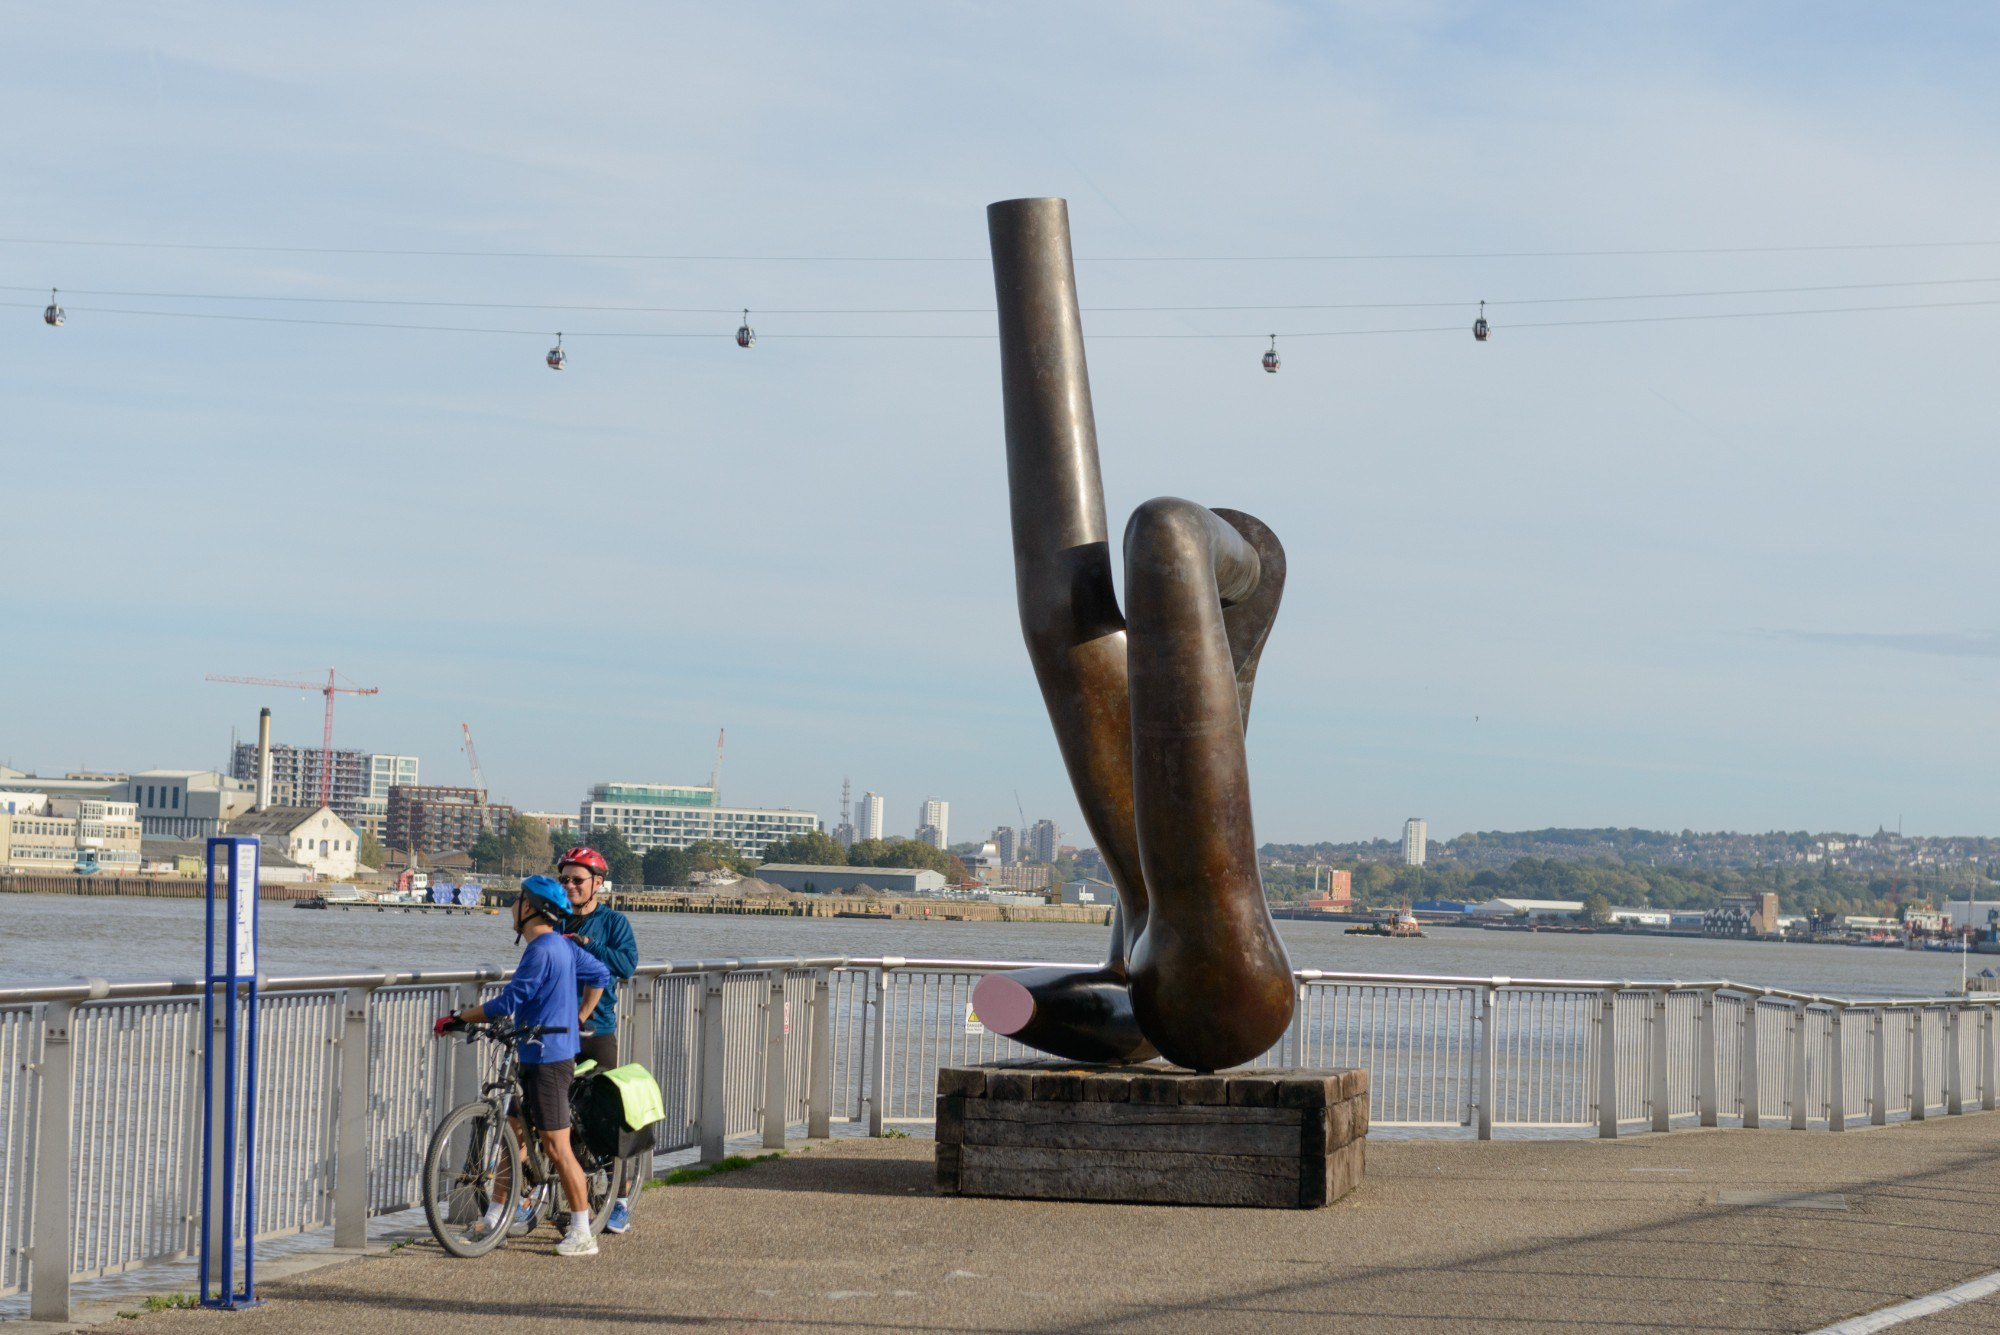 The Liberty Grip statue by Gary Hume